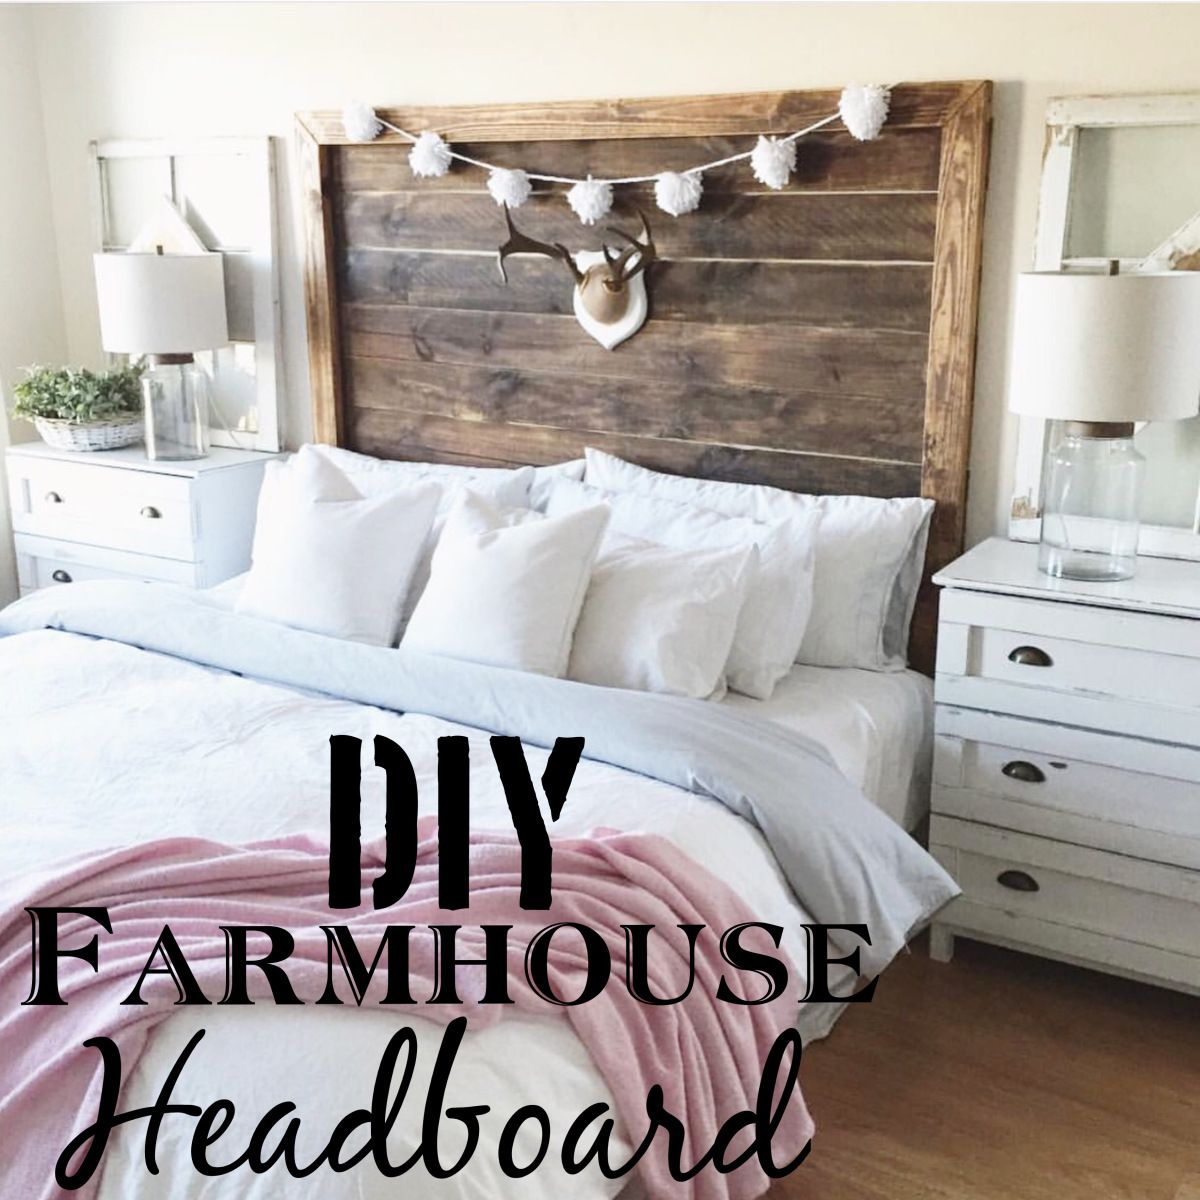 King Headboard Diy diy how to make your own wood headboard | diy headboards, queens